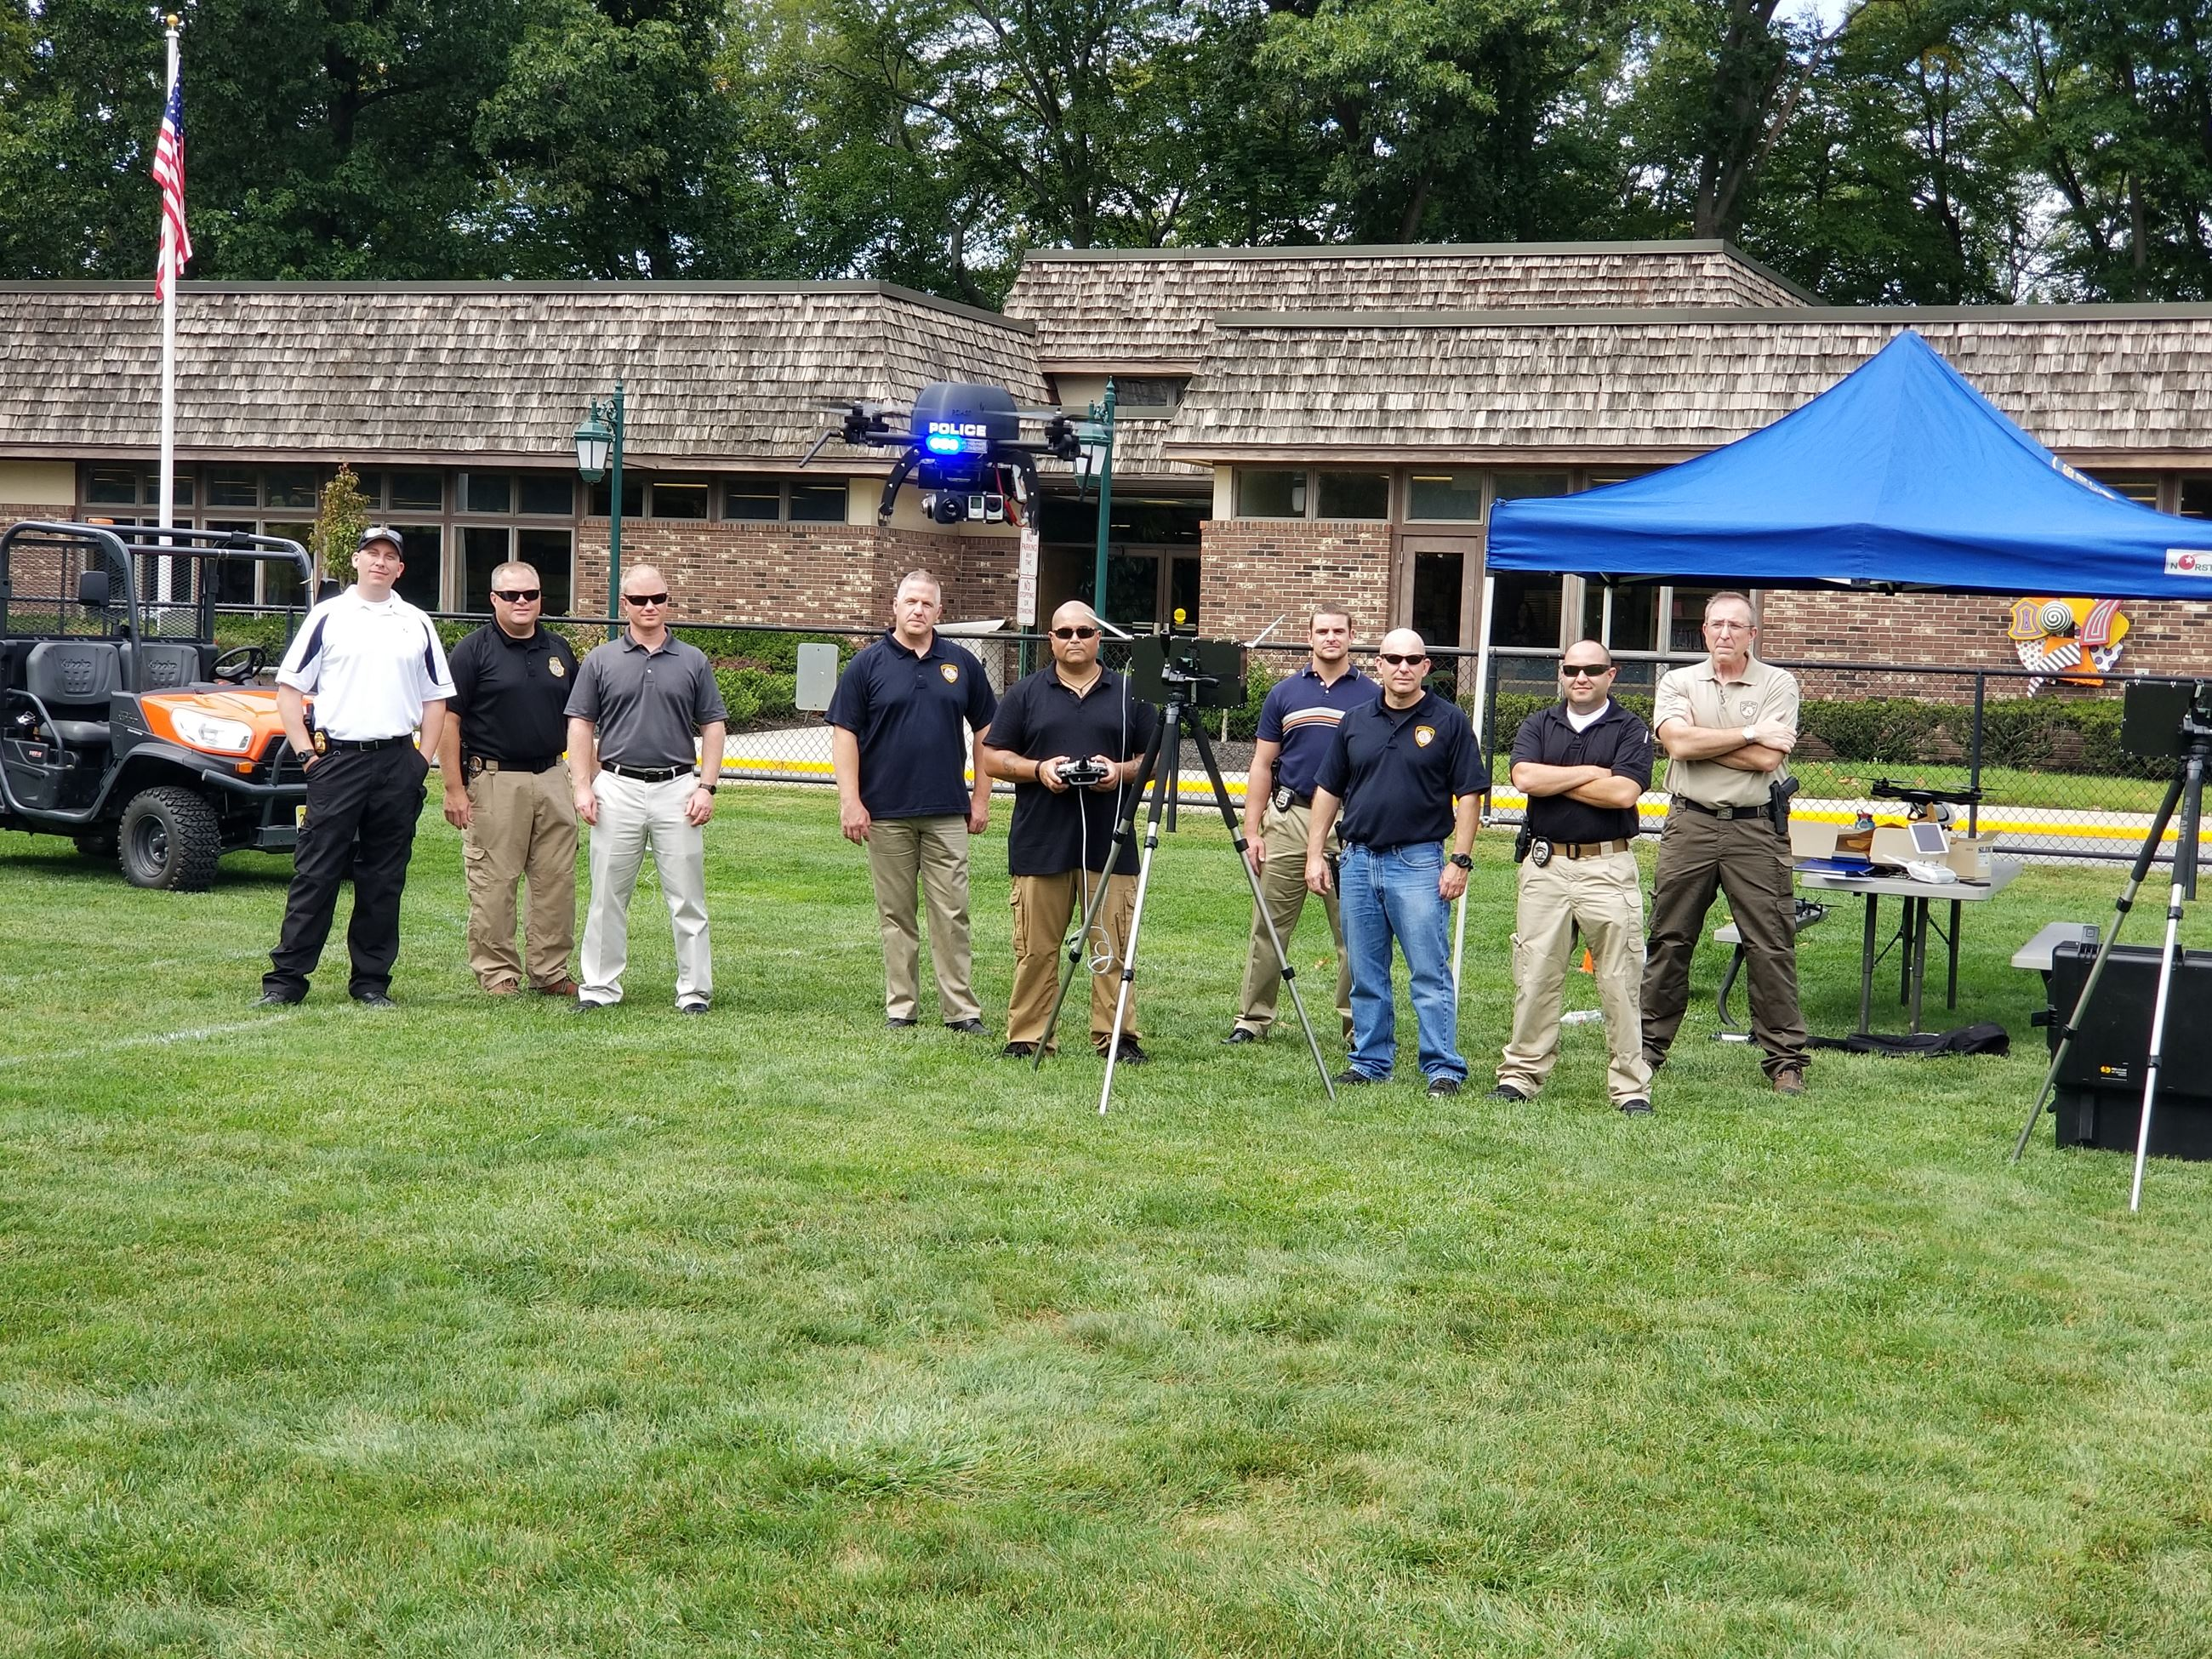 The River Vale Police Department hosted UAV training for members of its newly established UAS progra